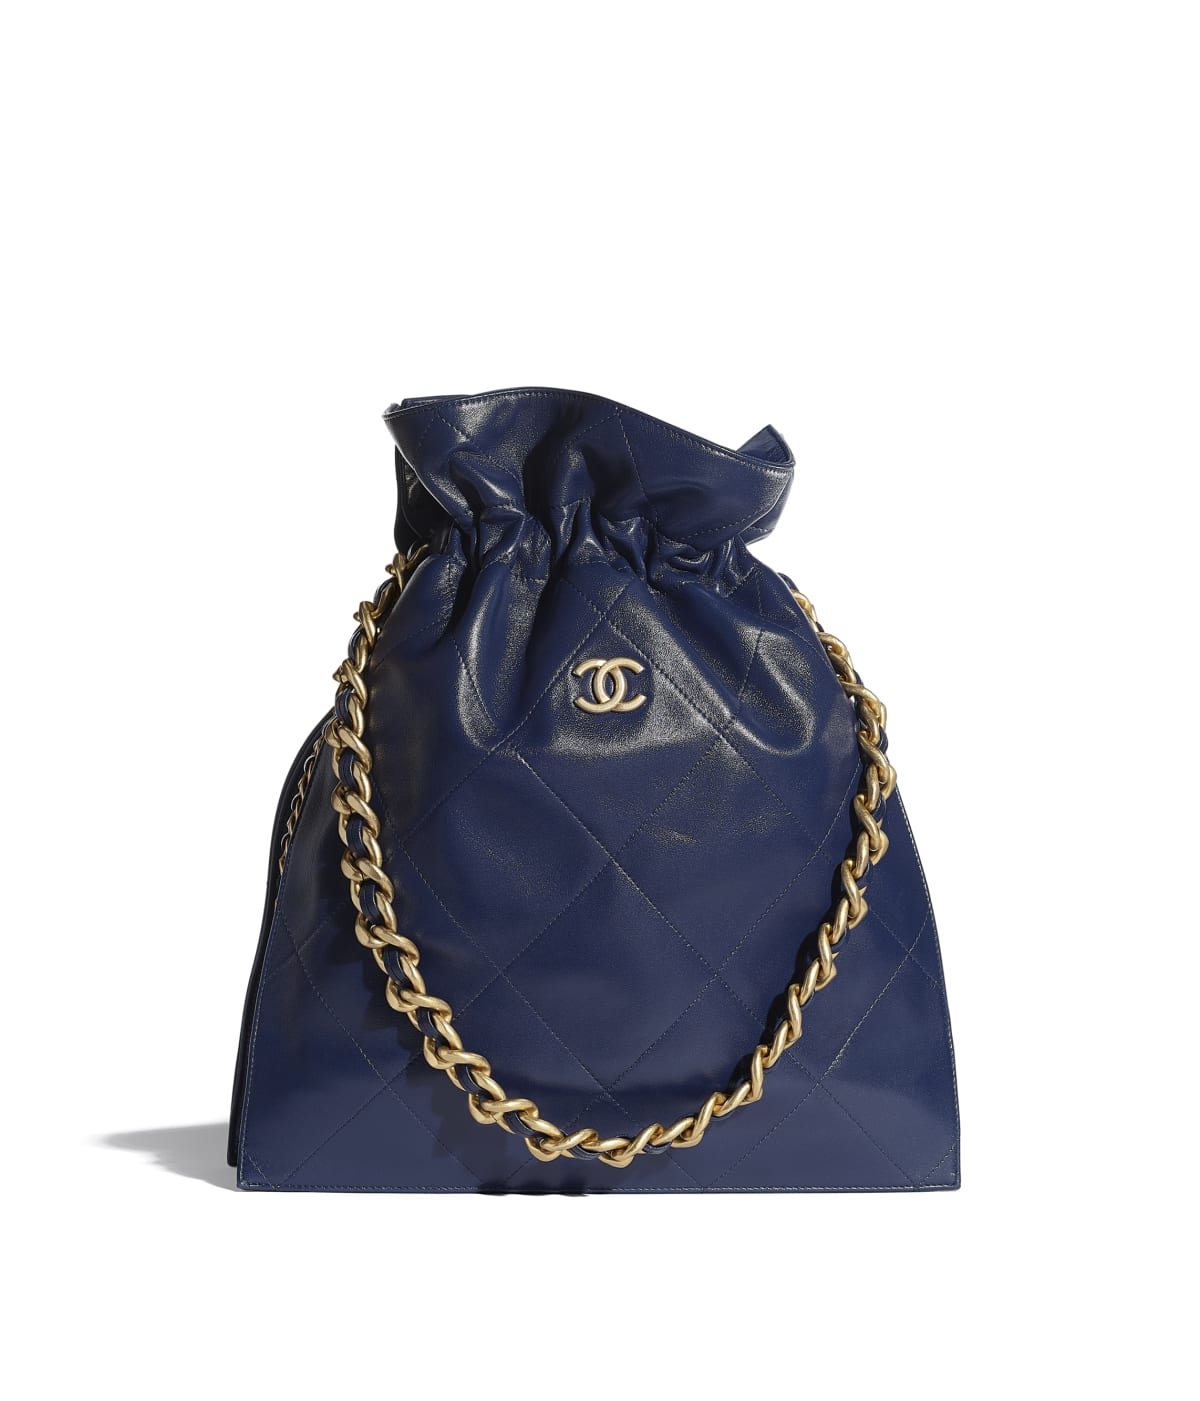 Large Tote Shiny Lambskin Gold Tone Metal Navy Blue Chanel